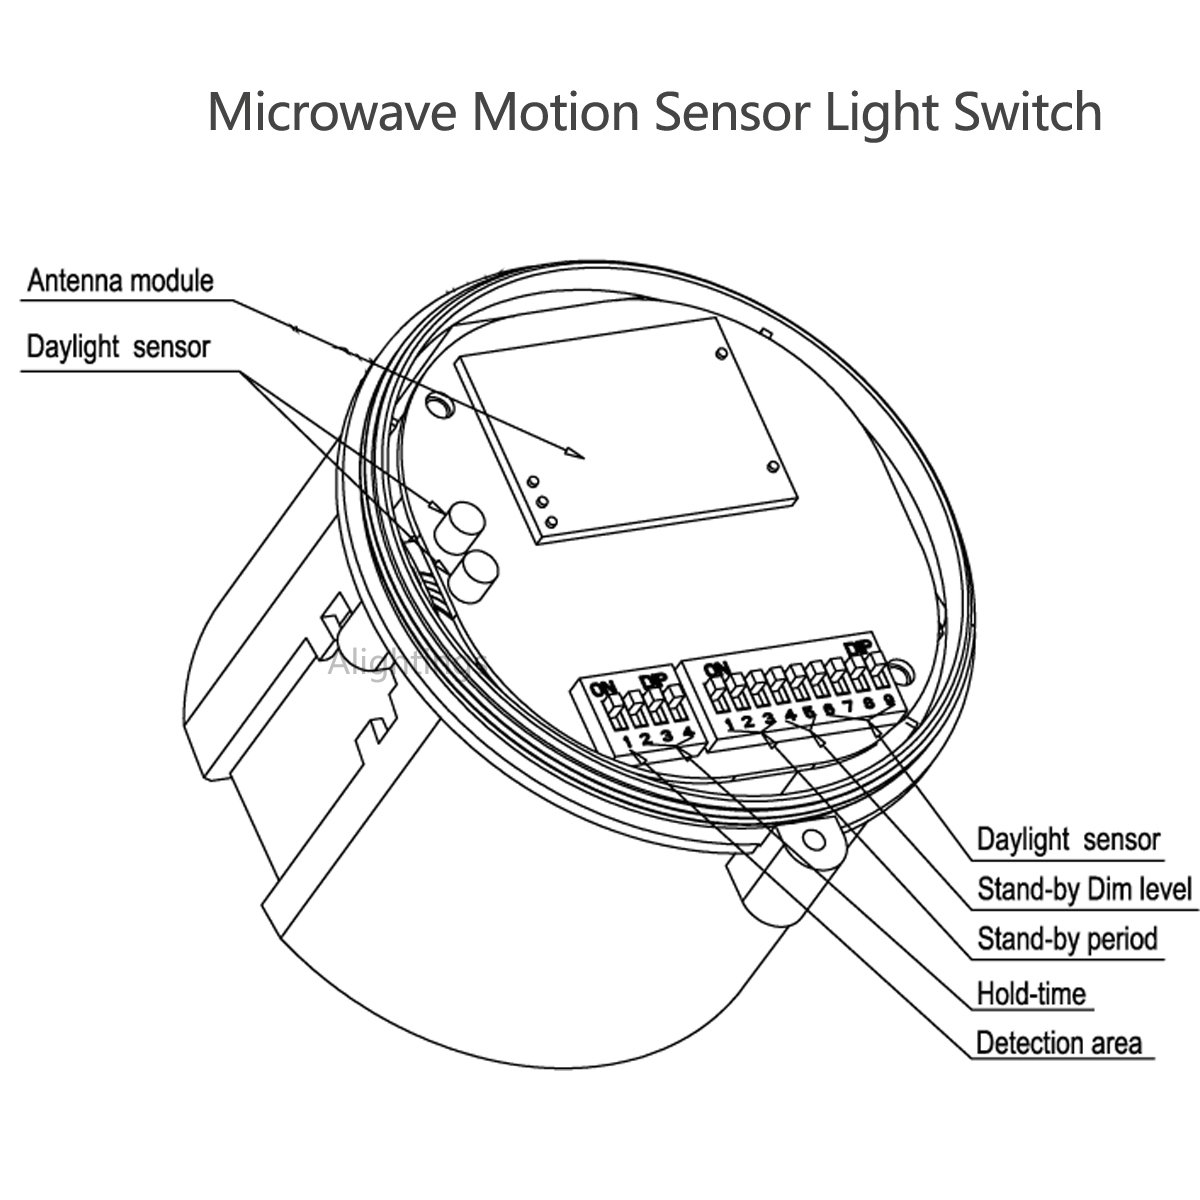 Motion Sensor Switch Automatic Switching Based On And Ambient Light Wiring Diagram Small Pir Level For Garages Warehouses